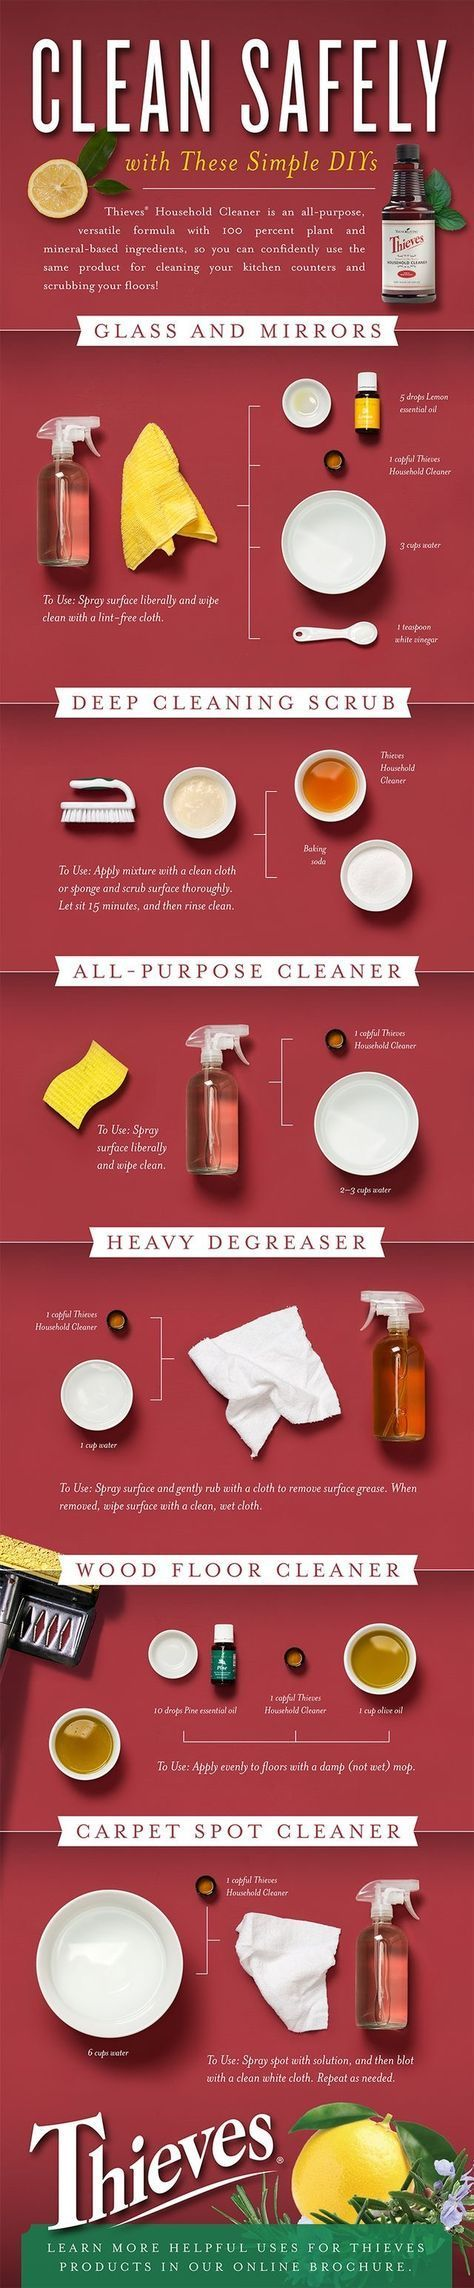 Thieves Cleaner Recipes for around the house. Thieves glass & mirror, all purpose, light and heavy degreaser, wood cleaning, carpet spot cleaning.